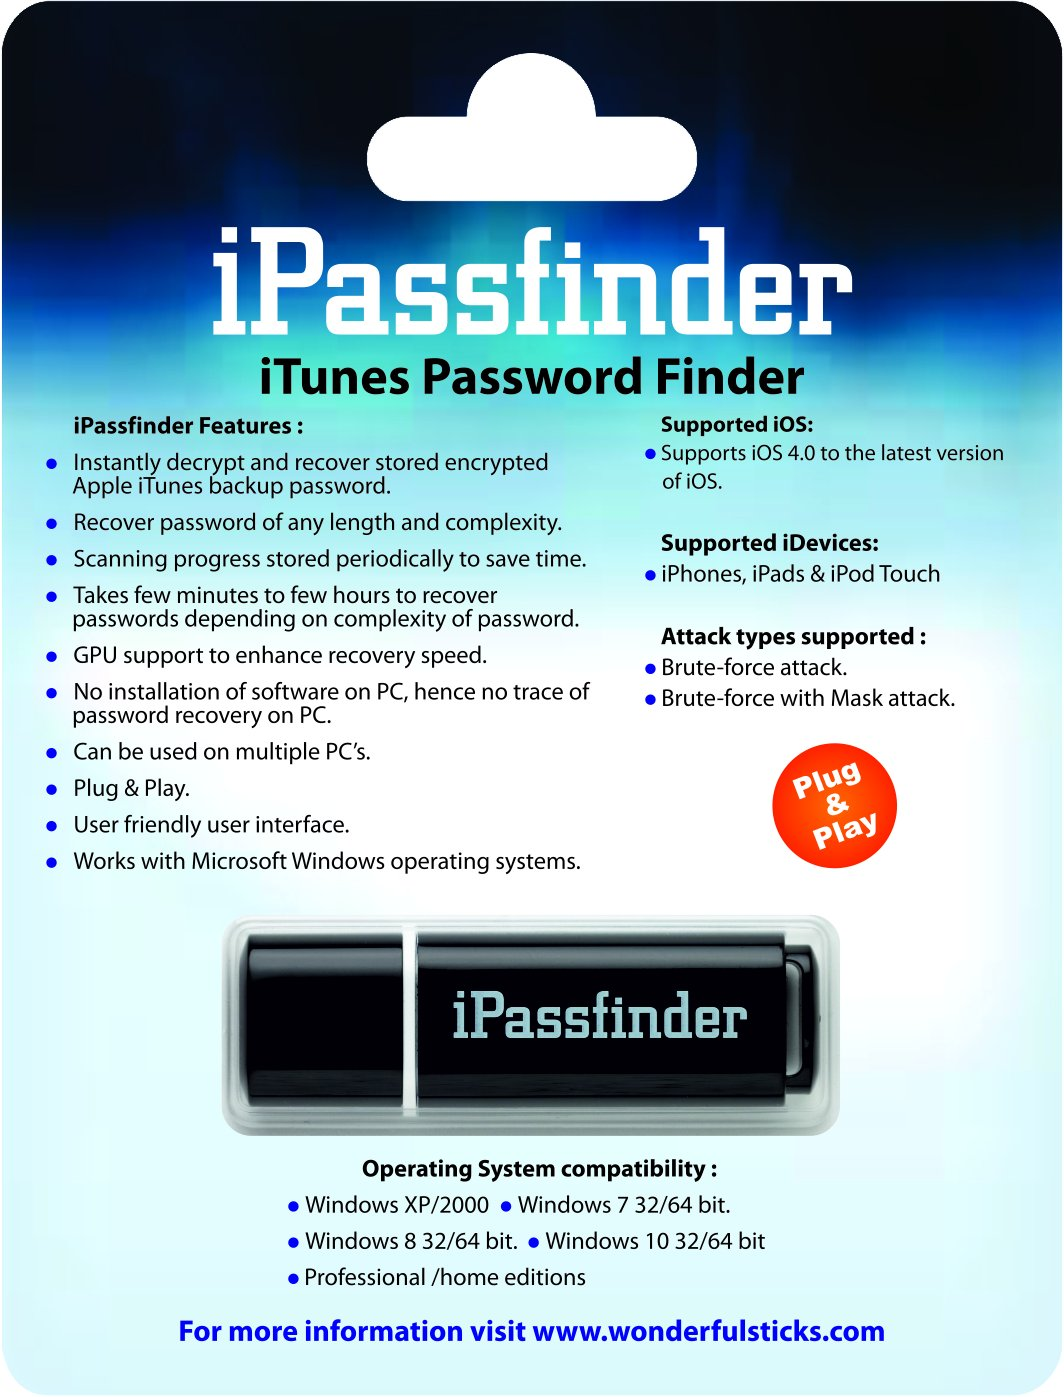 iPassfinder Password Recovery Tool for iPhone, iPad and iPod